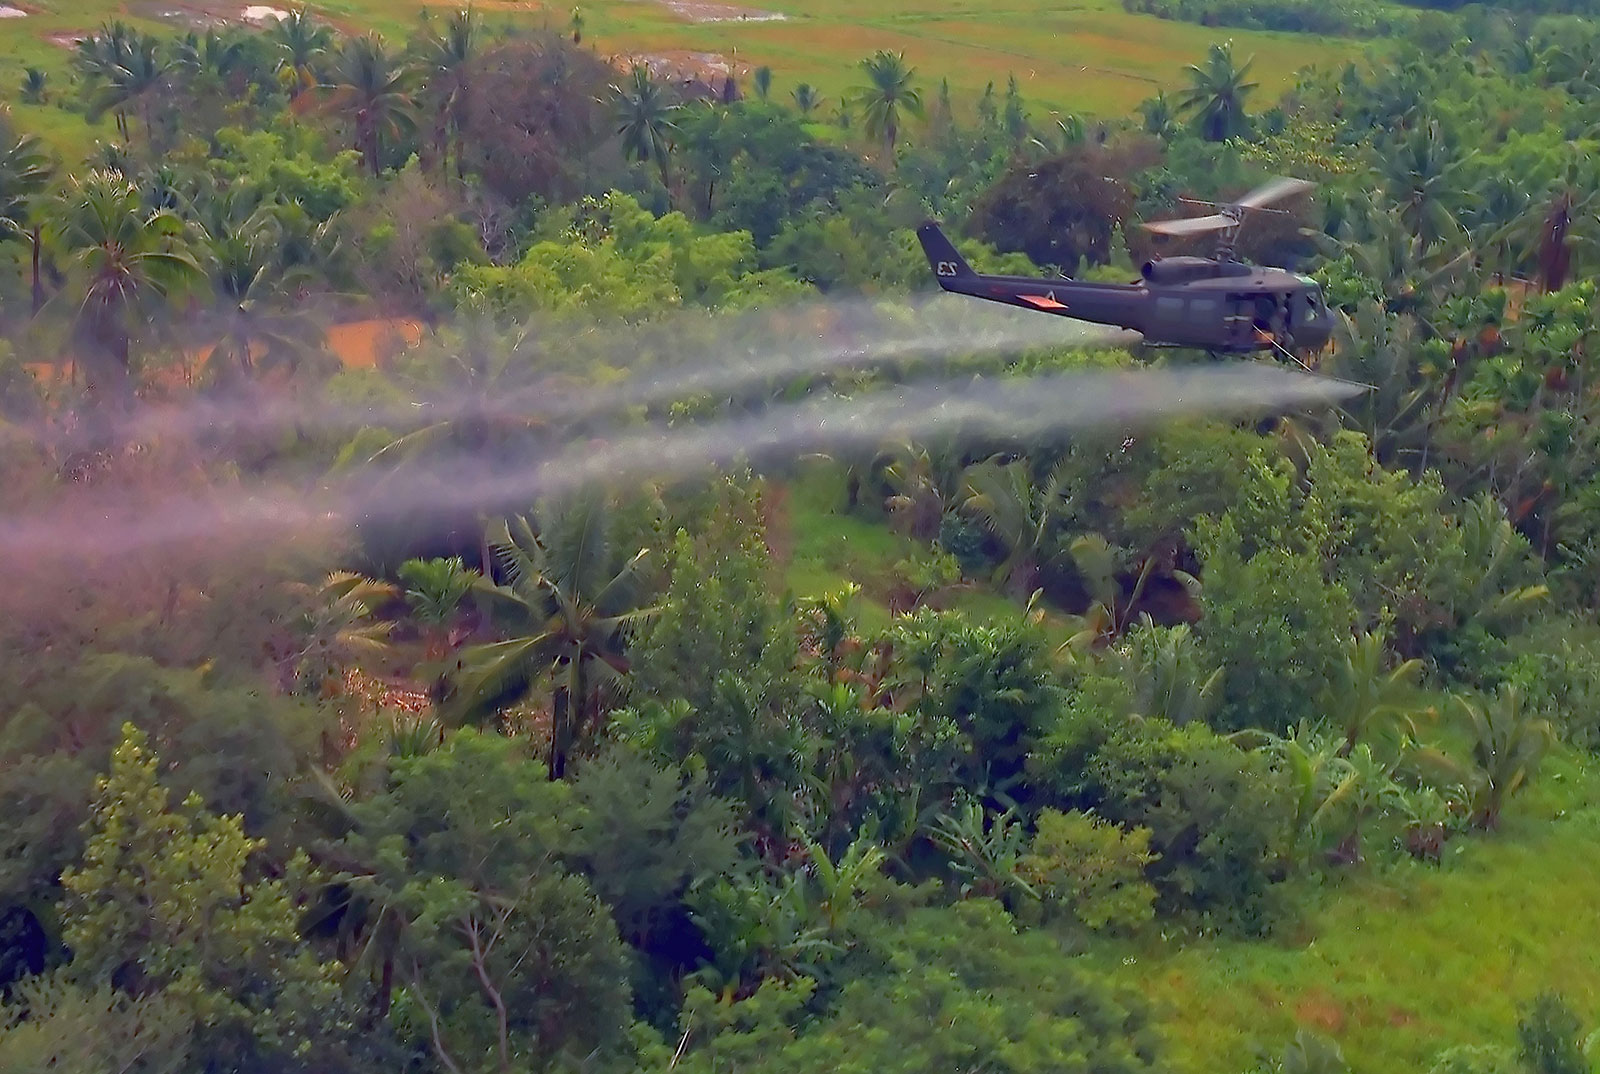 Image of an U.S. military helicopter spraying Agent Orange in Vietnam.